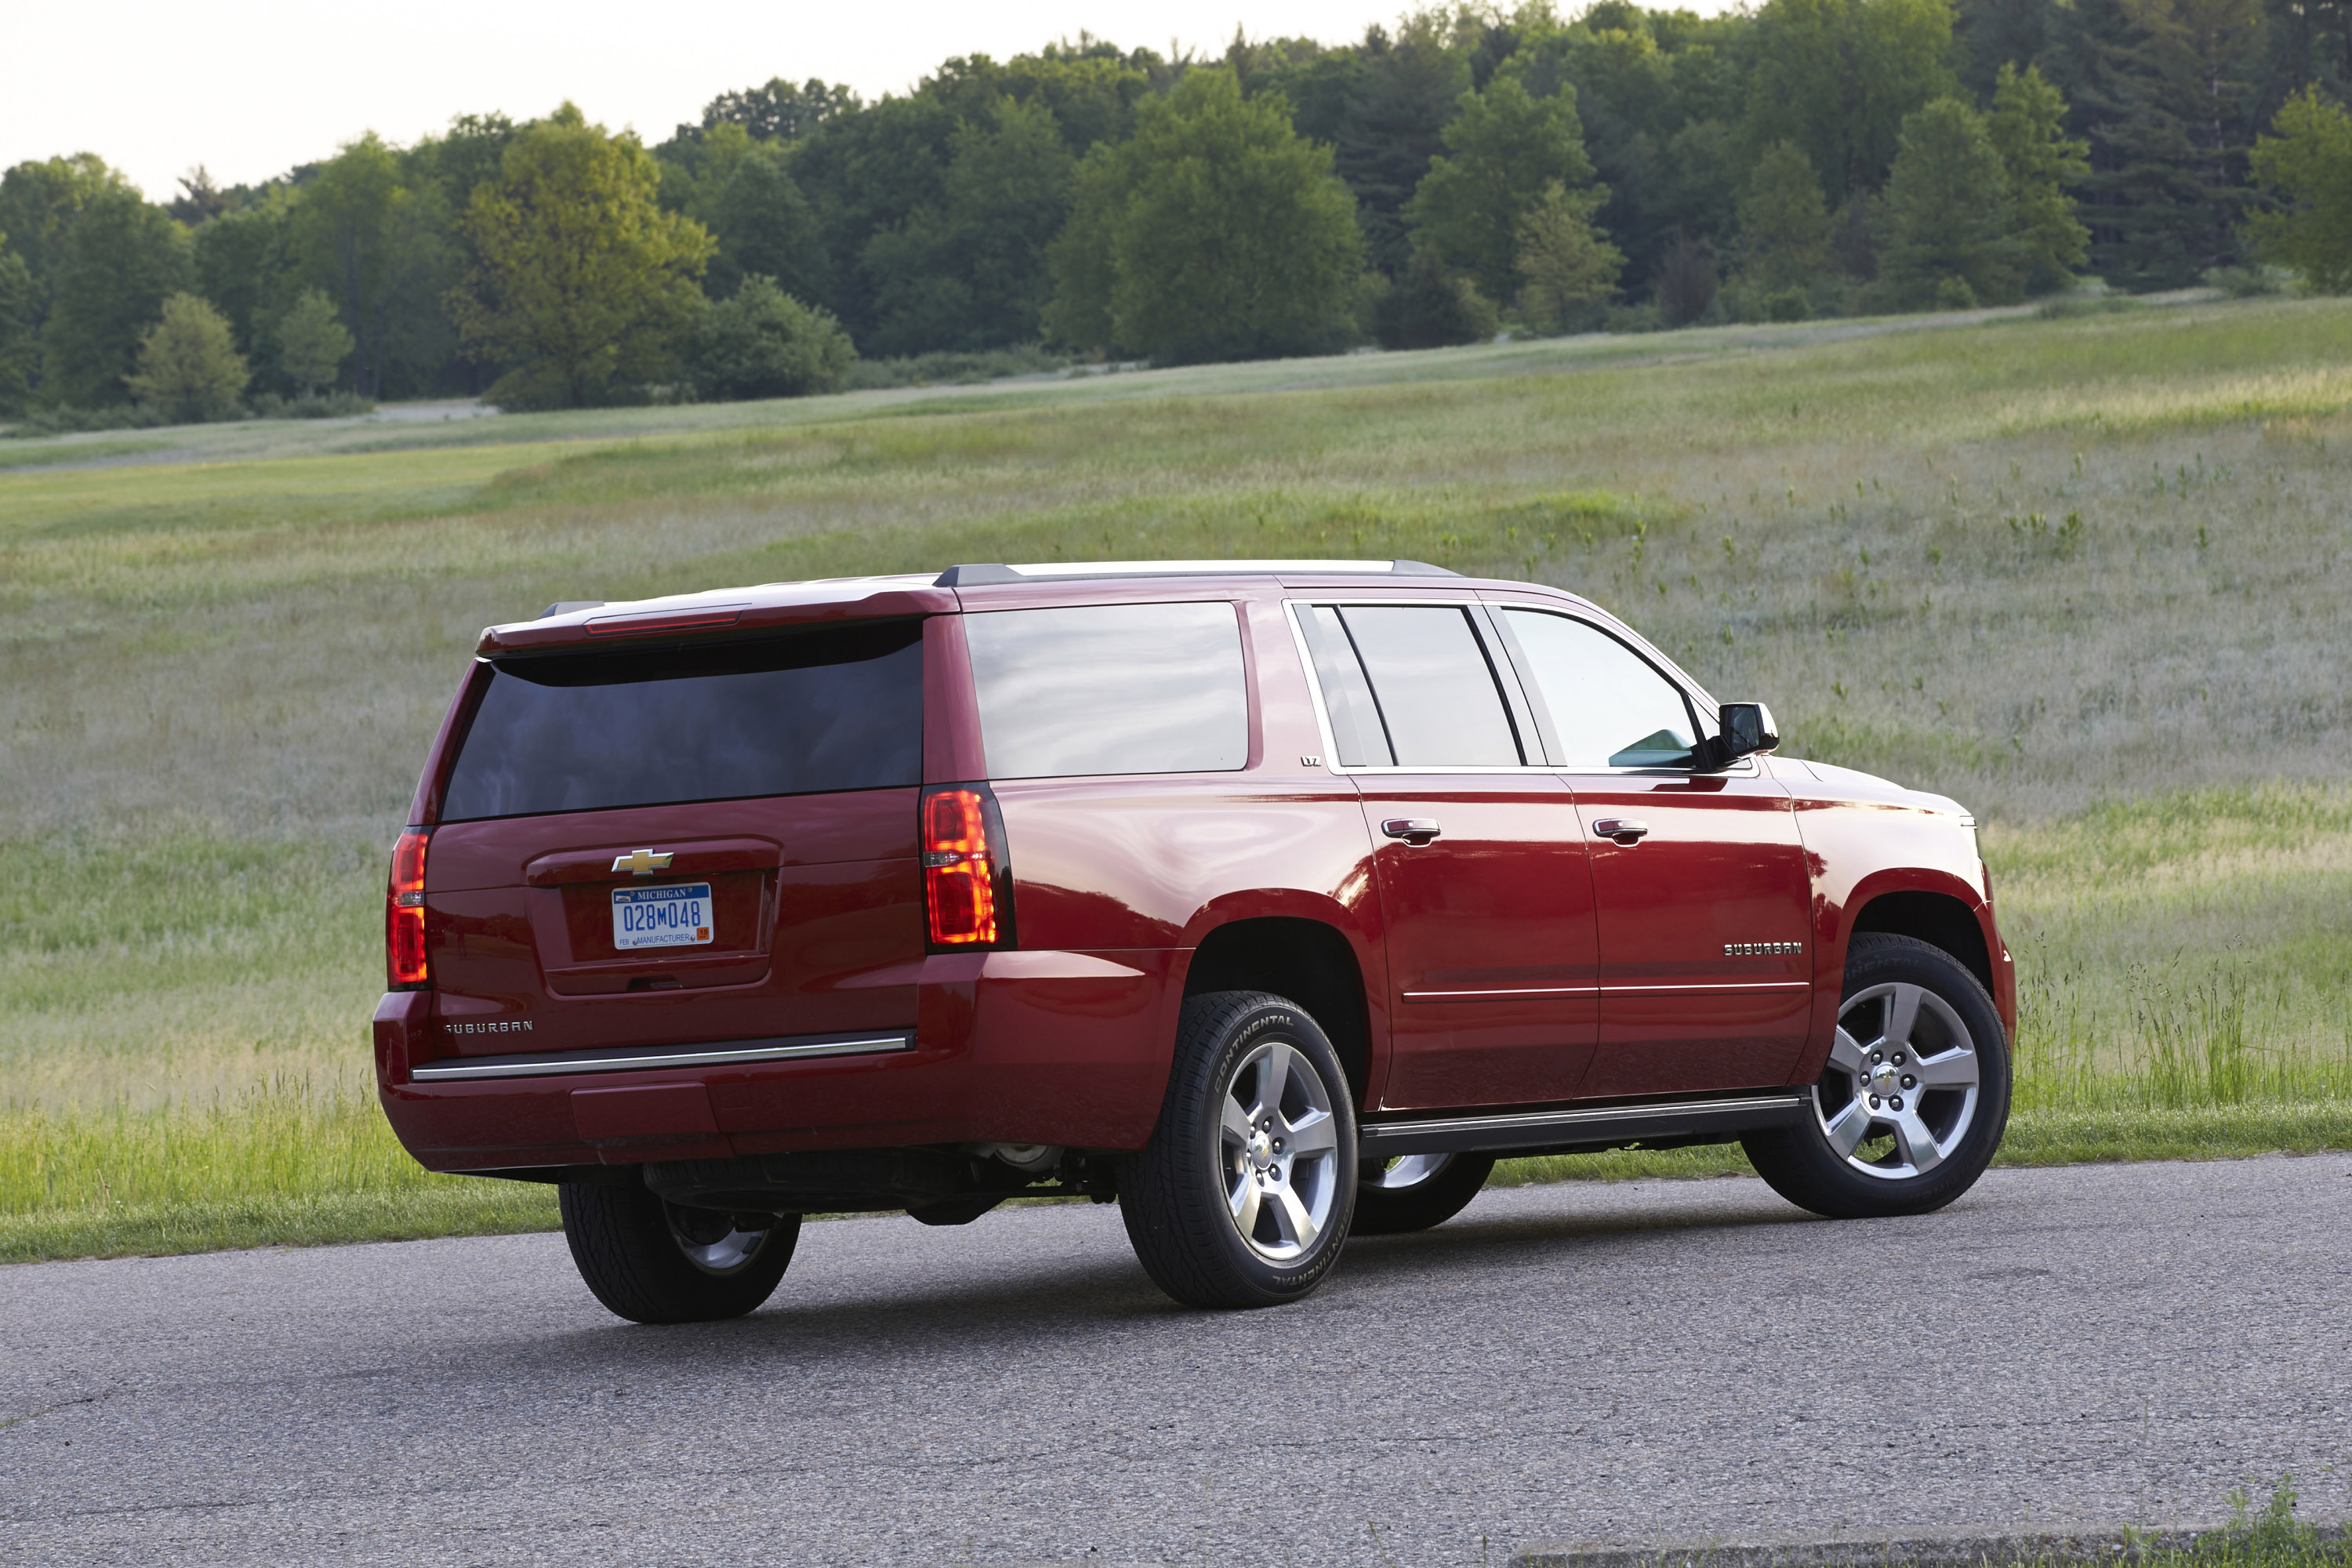 suburban chevrolet tahoe chevy ltz z71 diesel package wireless unsung trips hero road charging cars autoevolution teases feature converted duramax